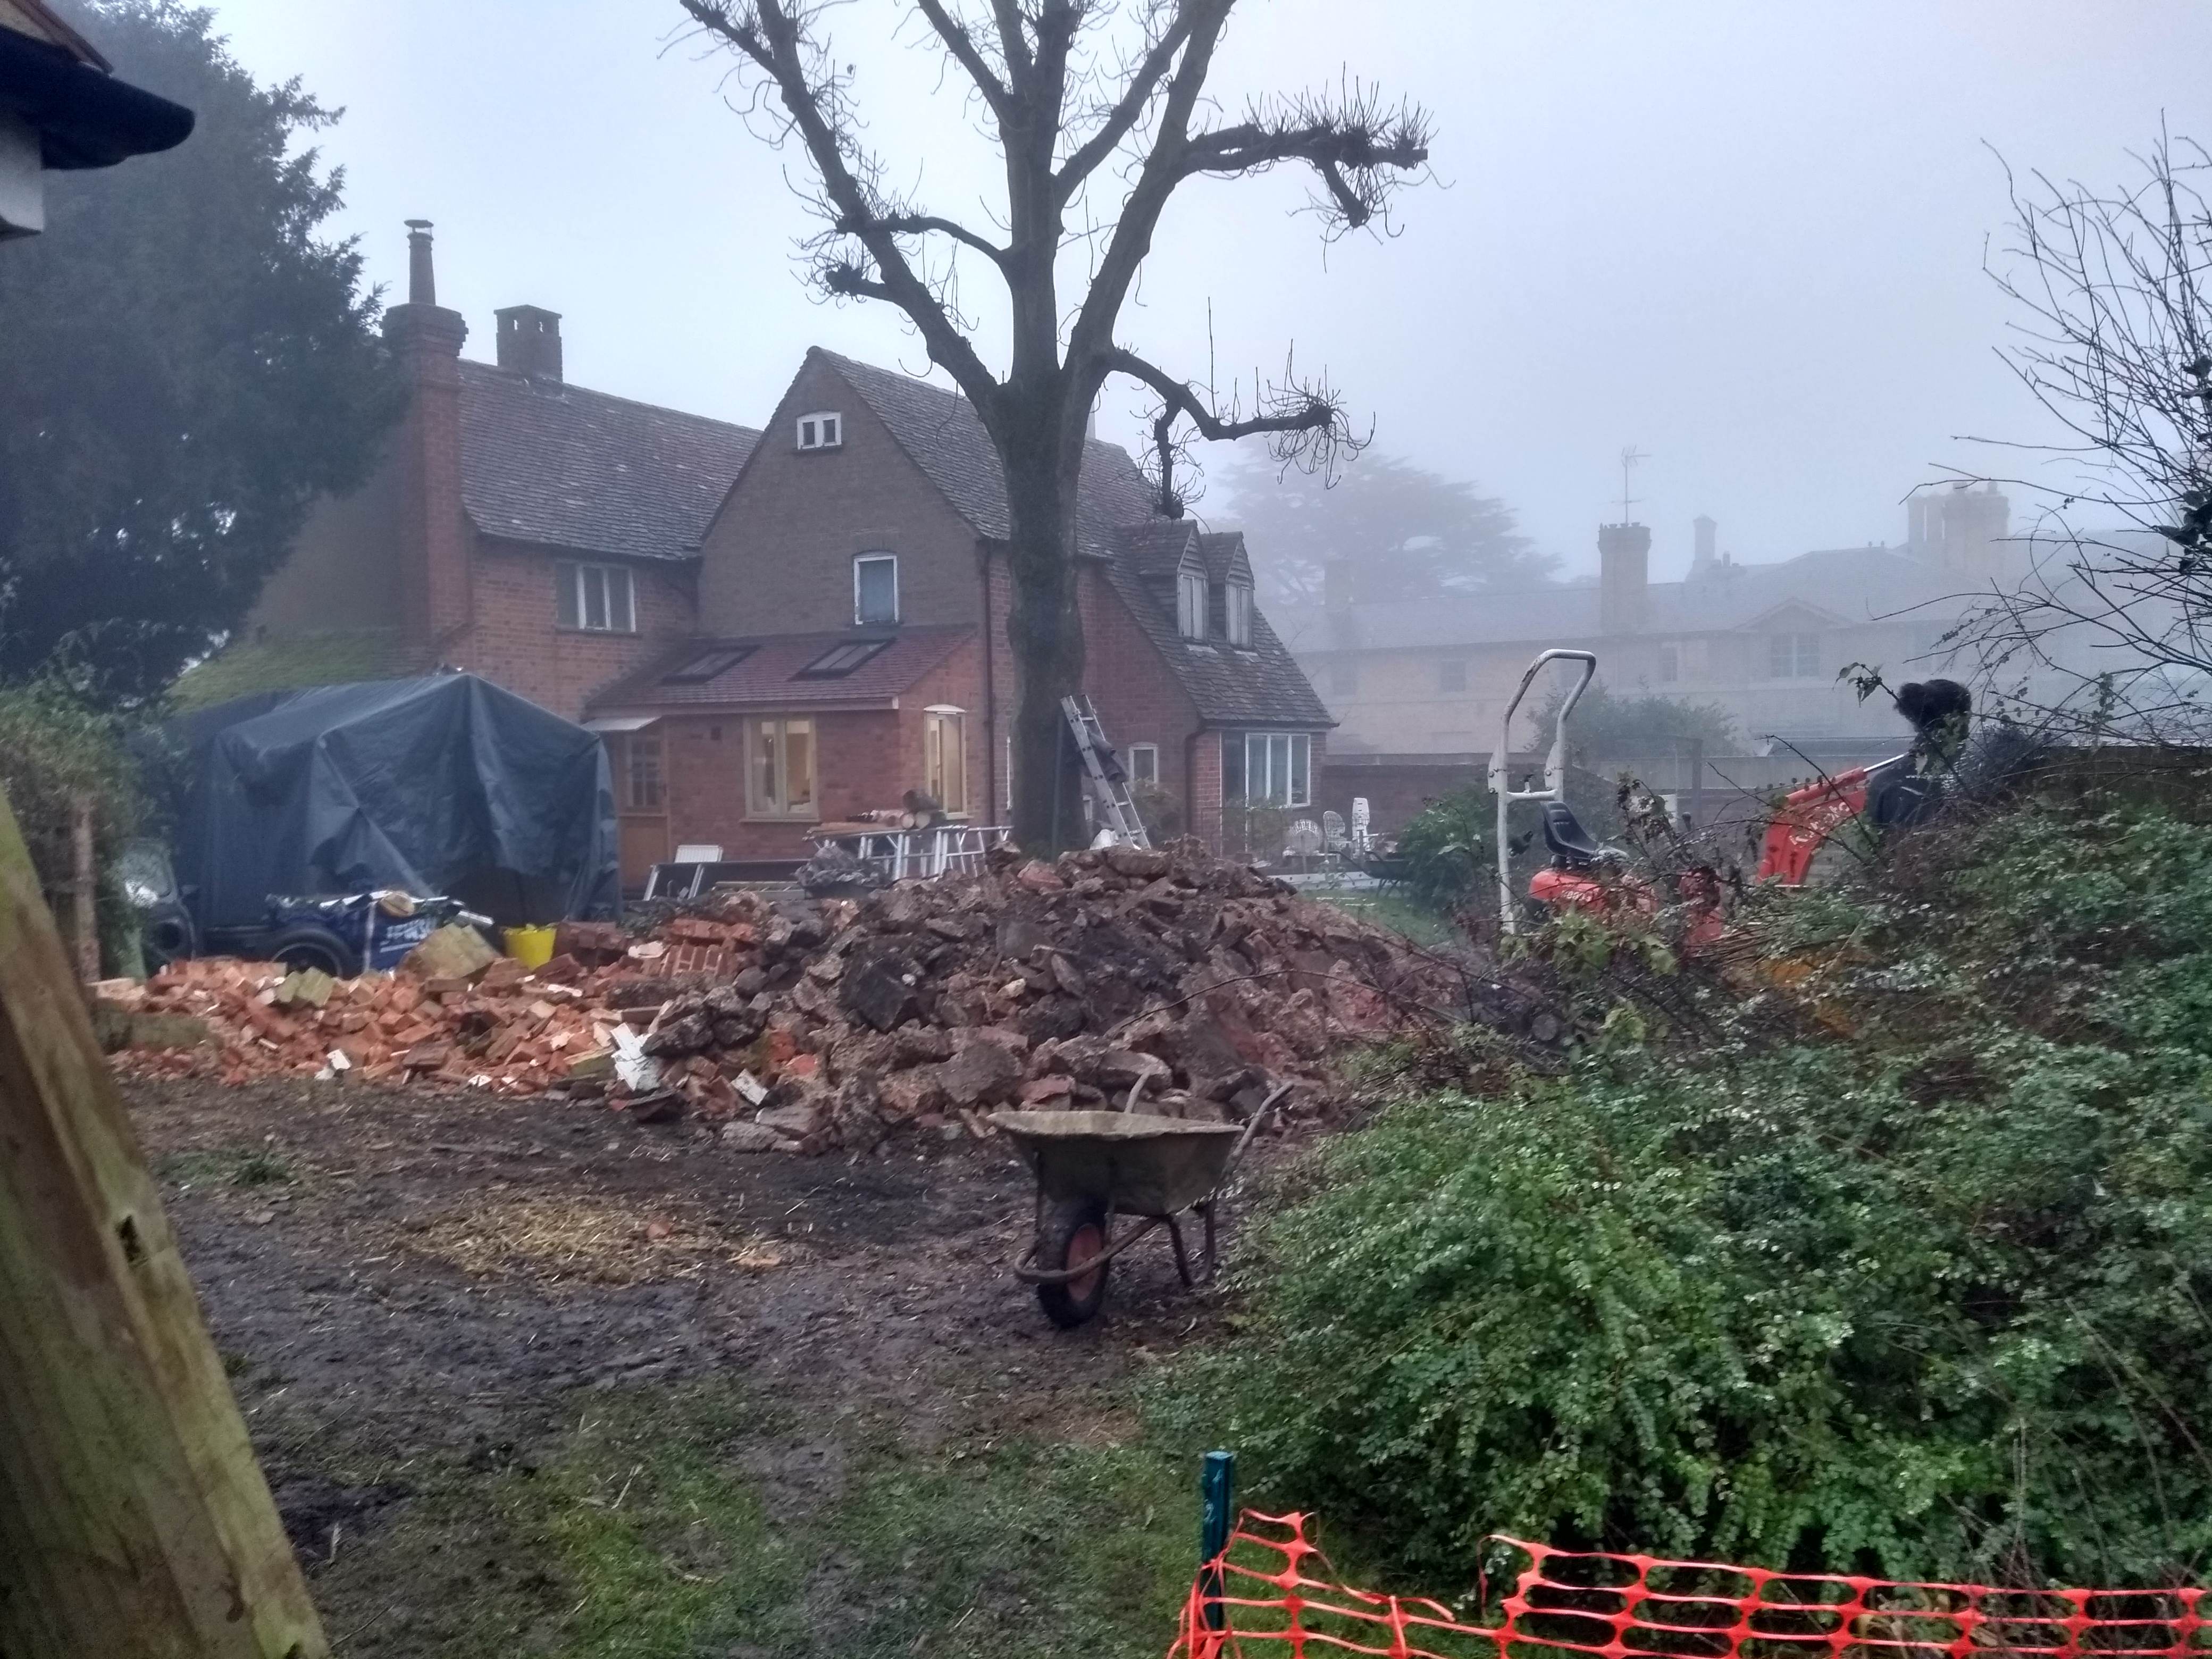 Demolition of existing structures